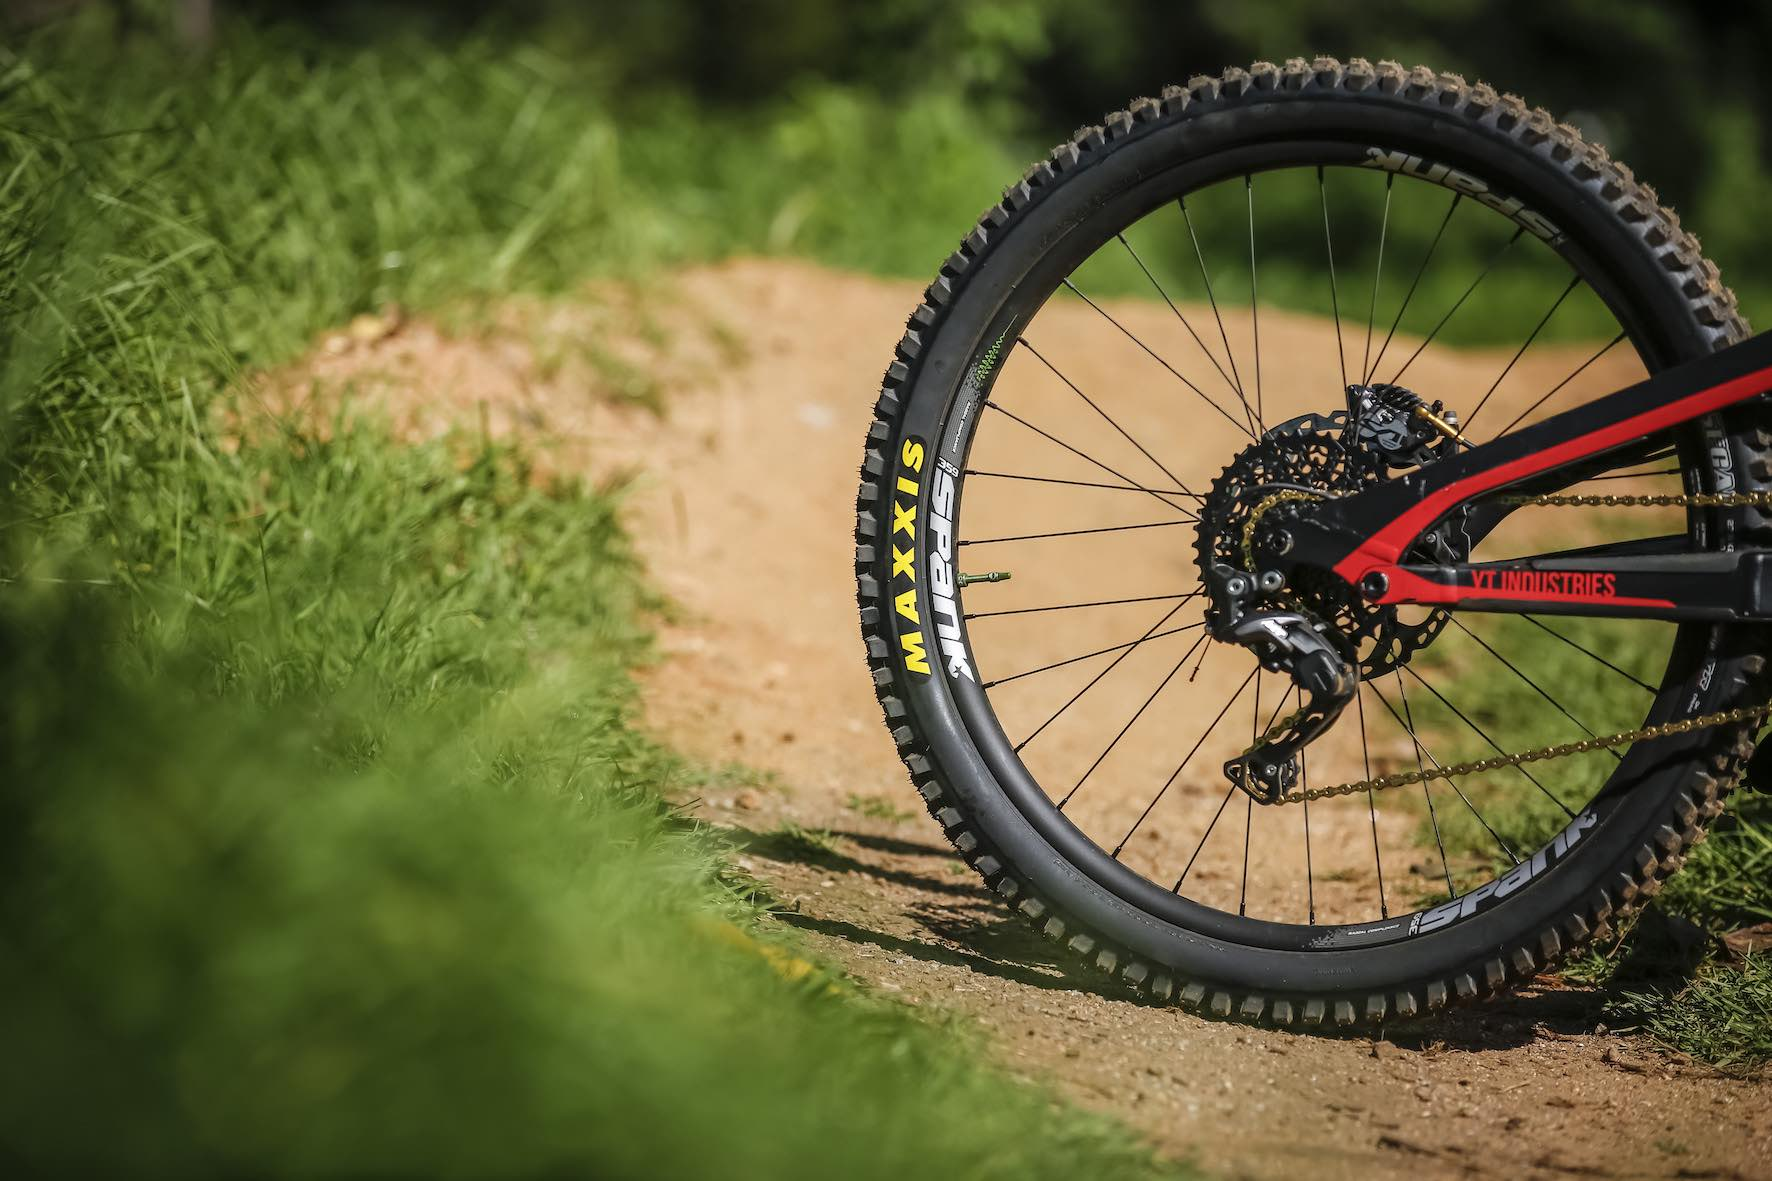 Introducing the Spank 350/359 Vibrocore Tuned Wheelset